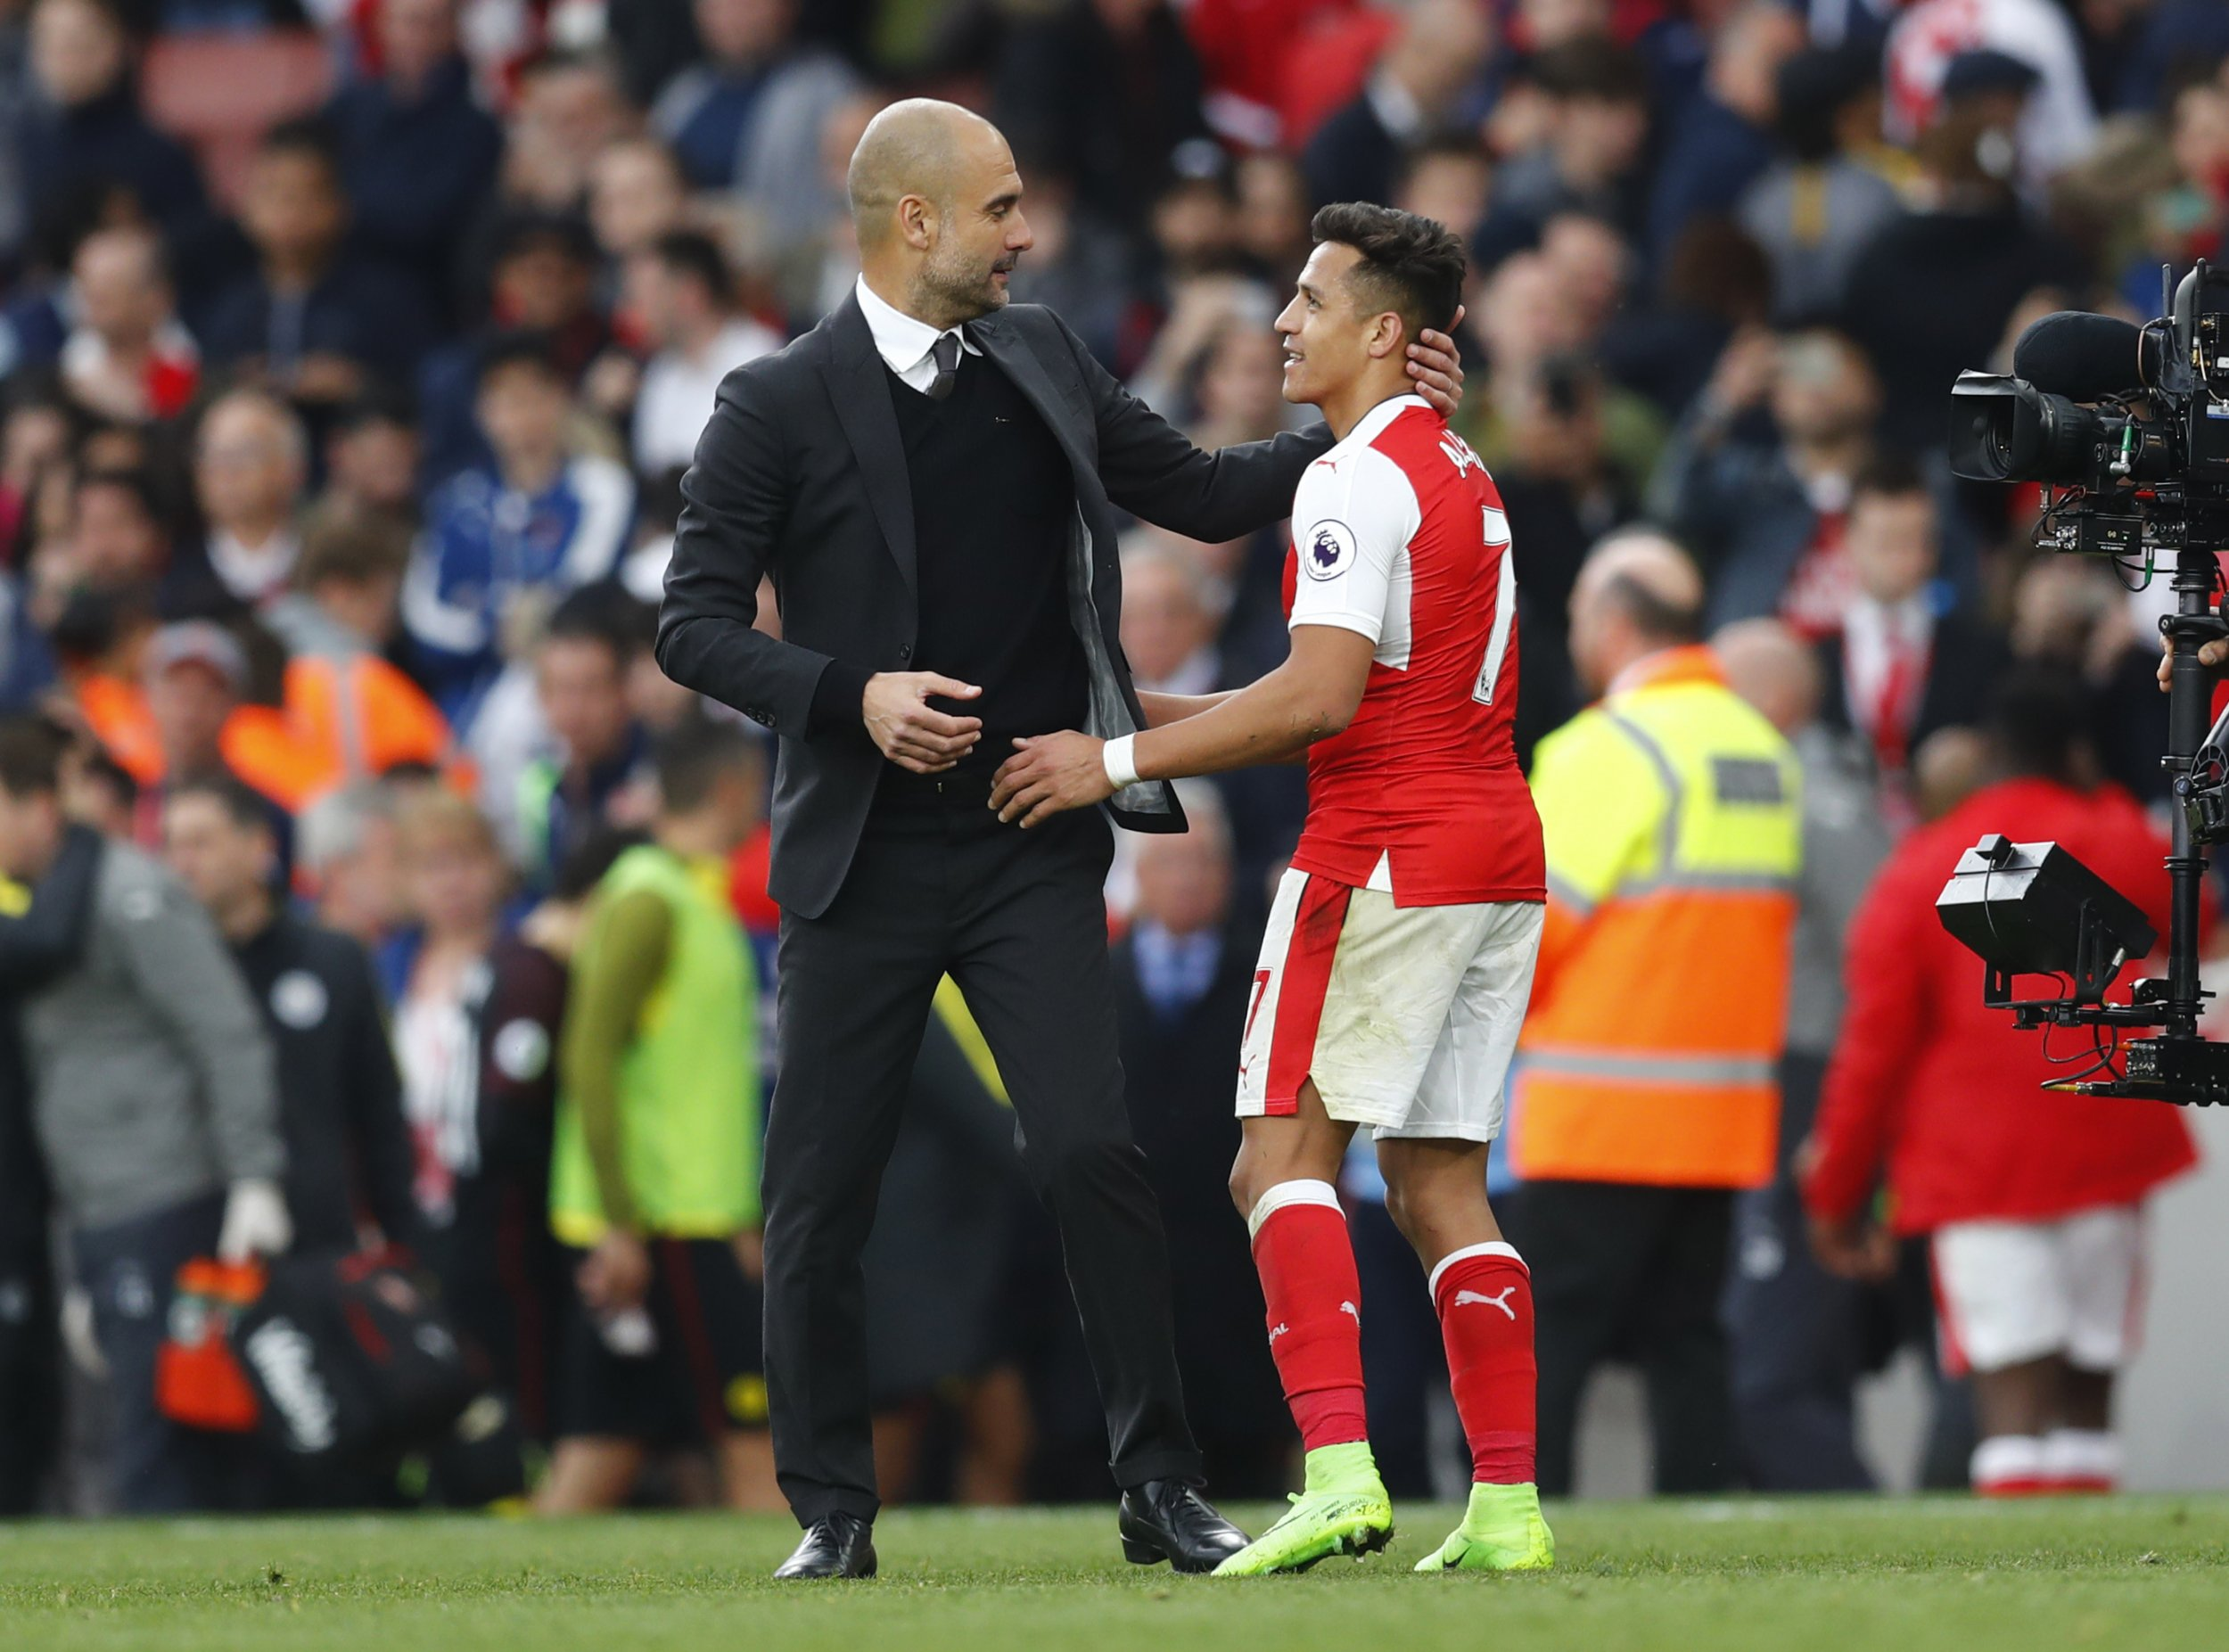 Guardiola and Sanchez